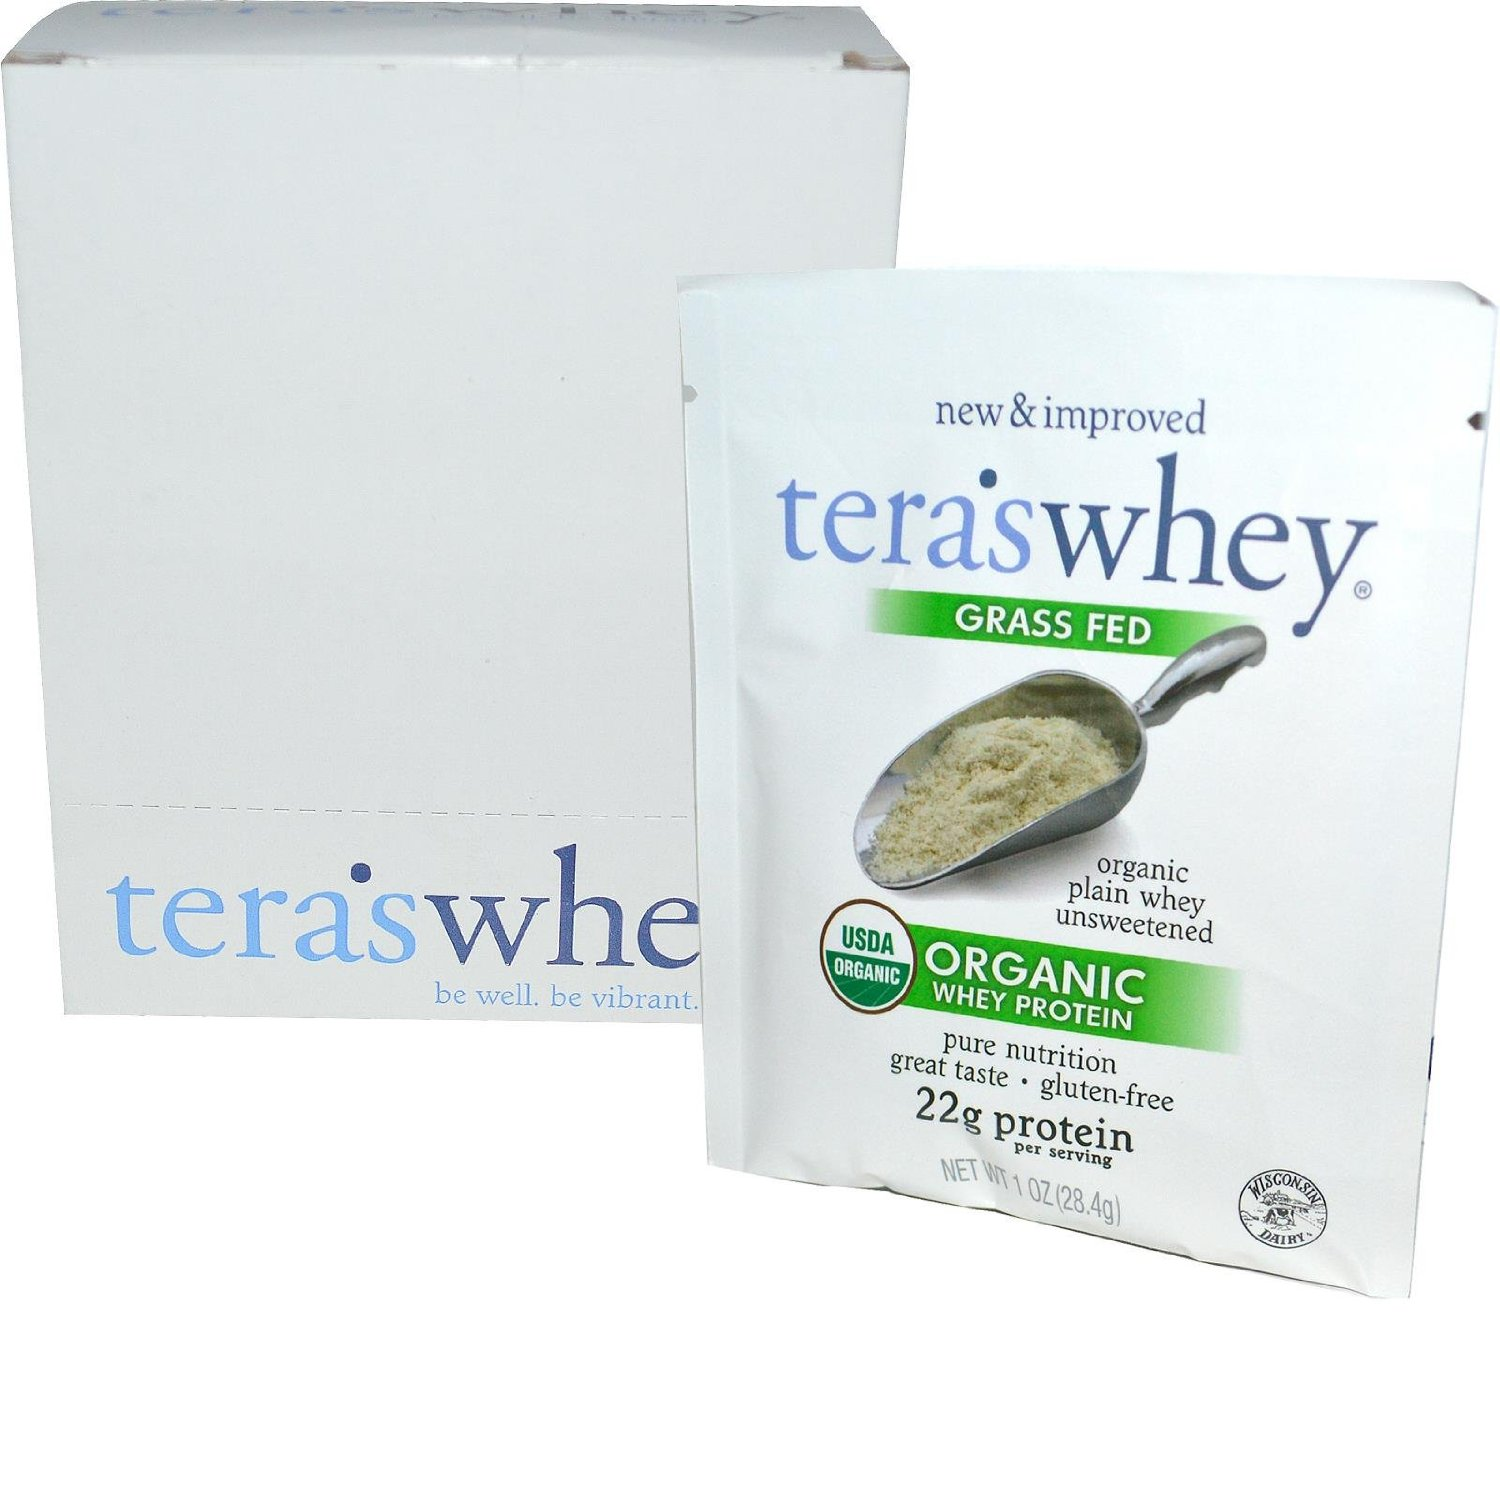 Image of Organic Cow Whey Plain (Unsweetened) 1oz Counter Display